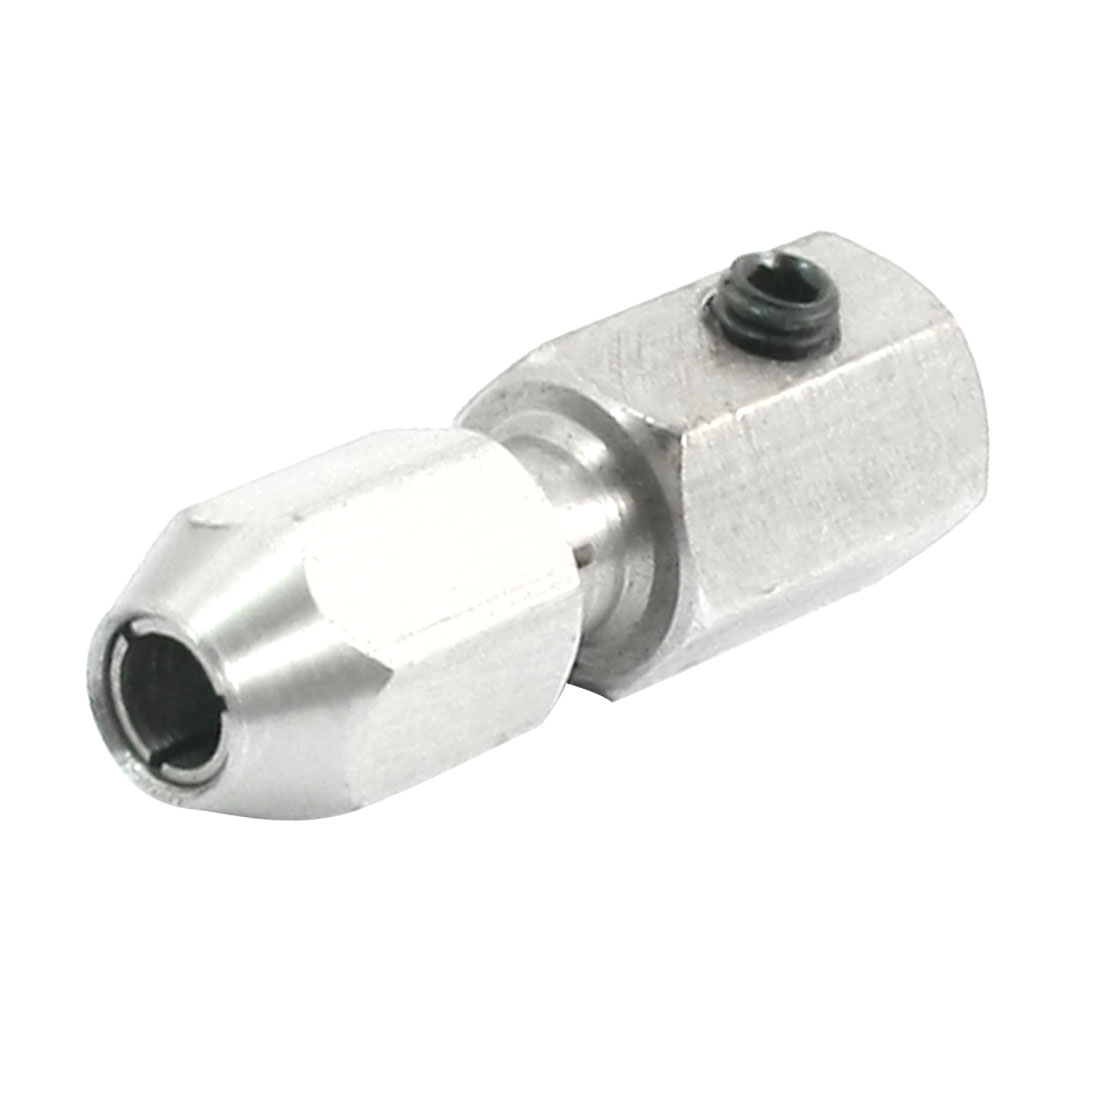 4mm Un-threaded to 4mm Stainless Steel Collet Coupler Shaft for RC Boat Gasoline Engine Clutch